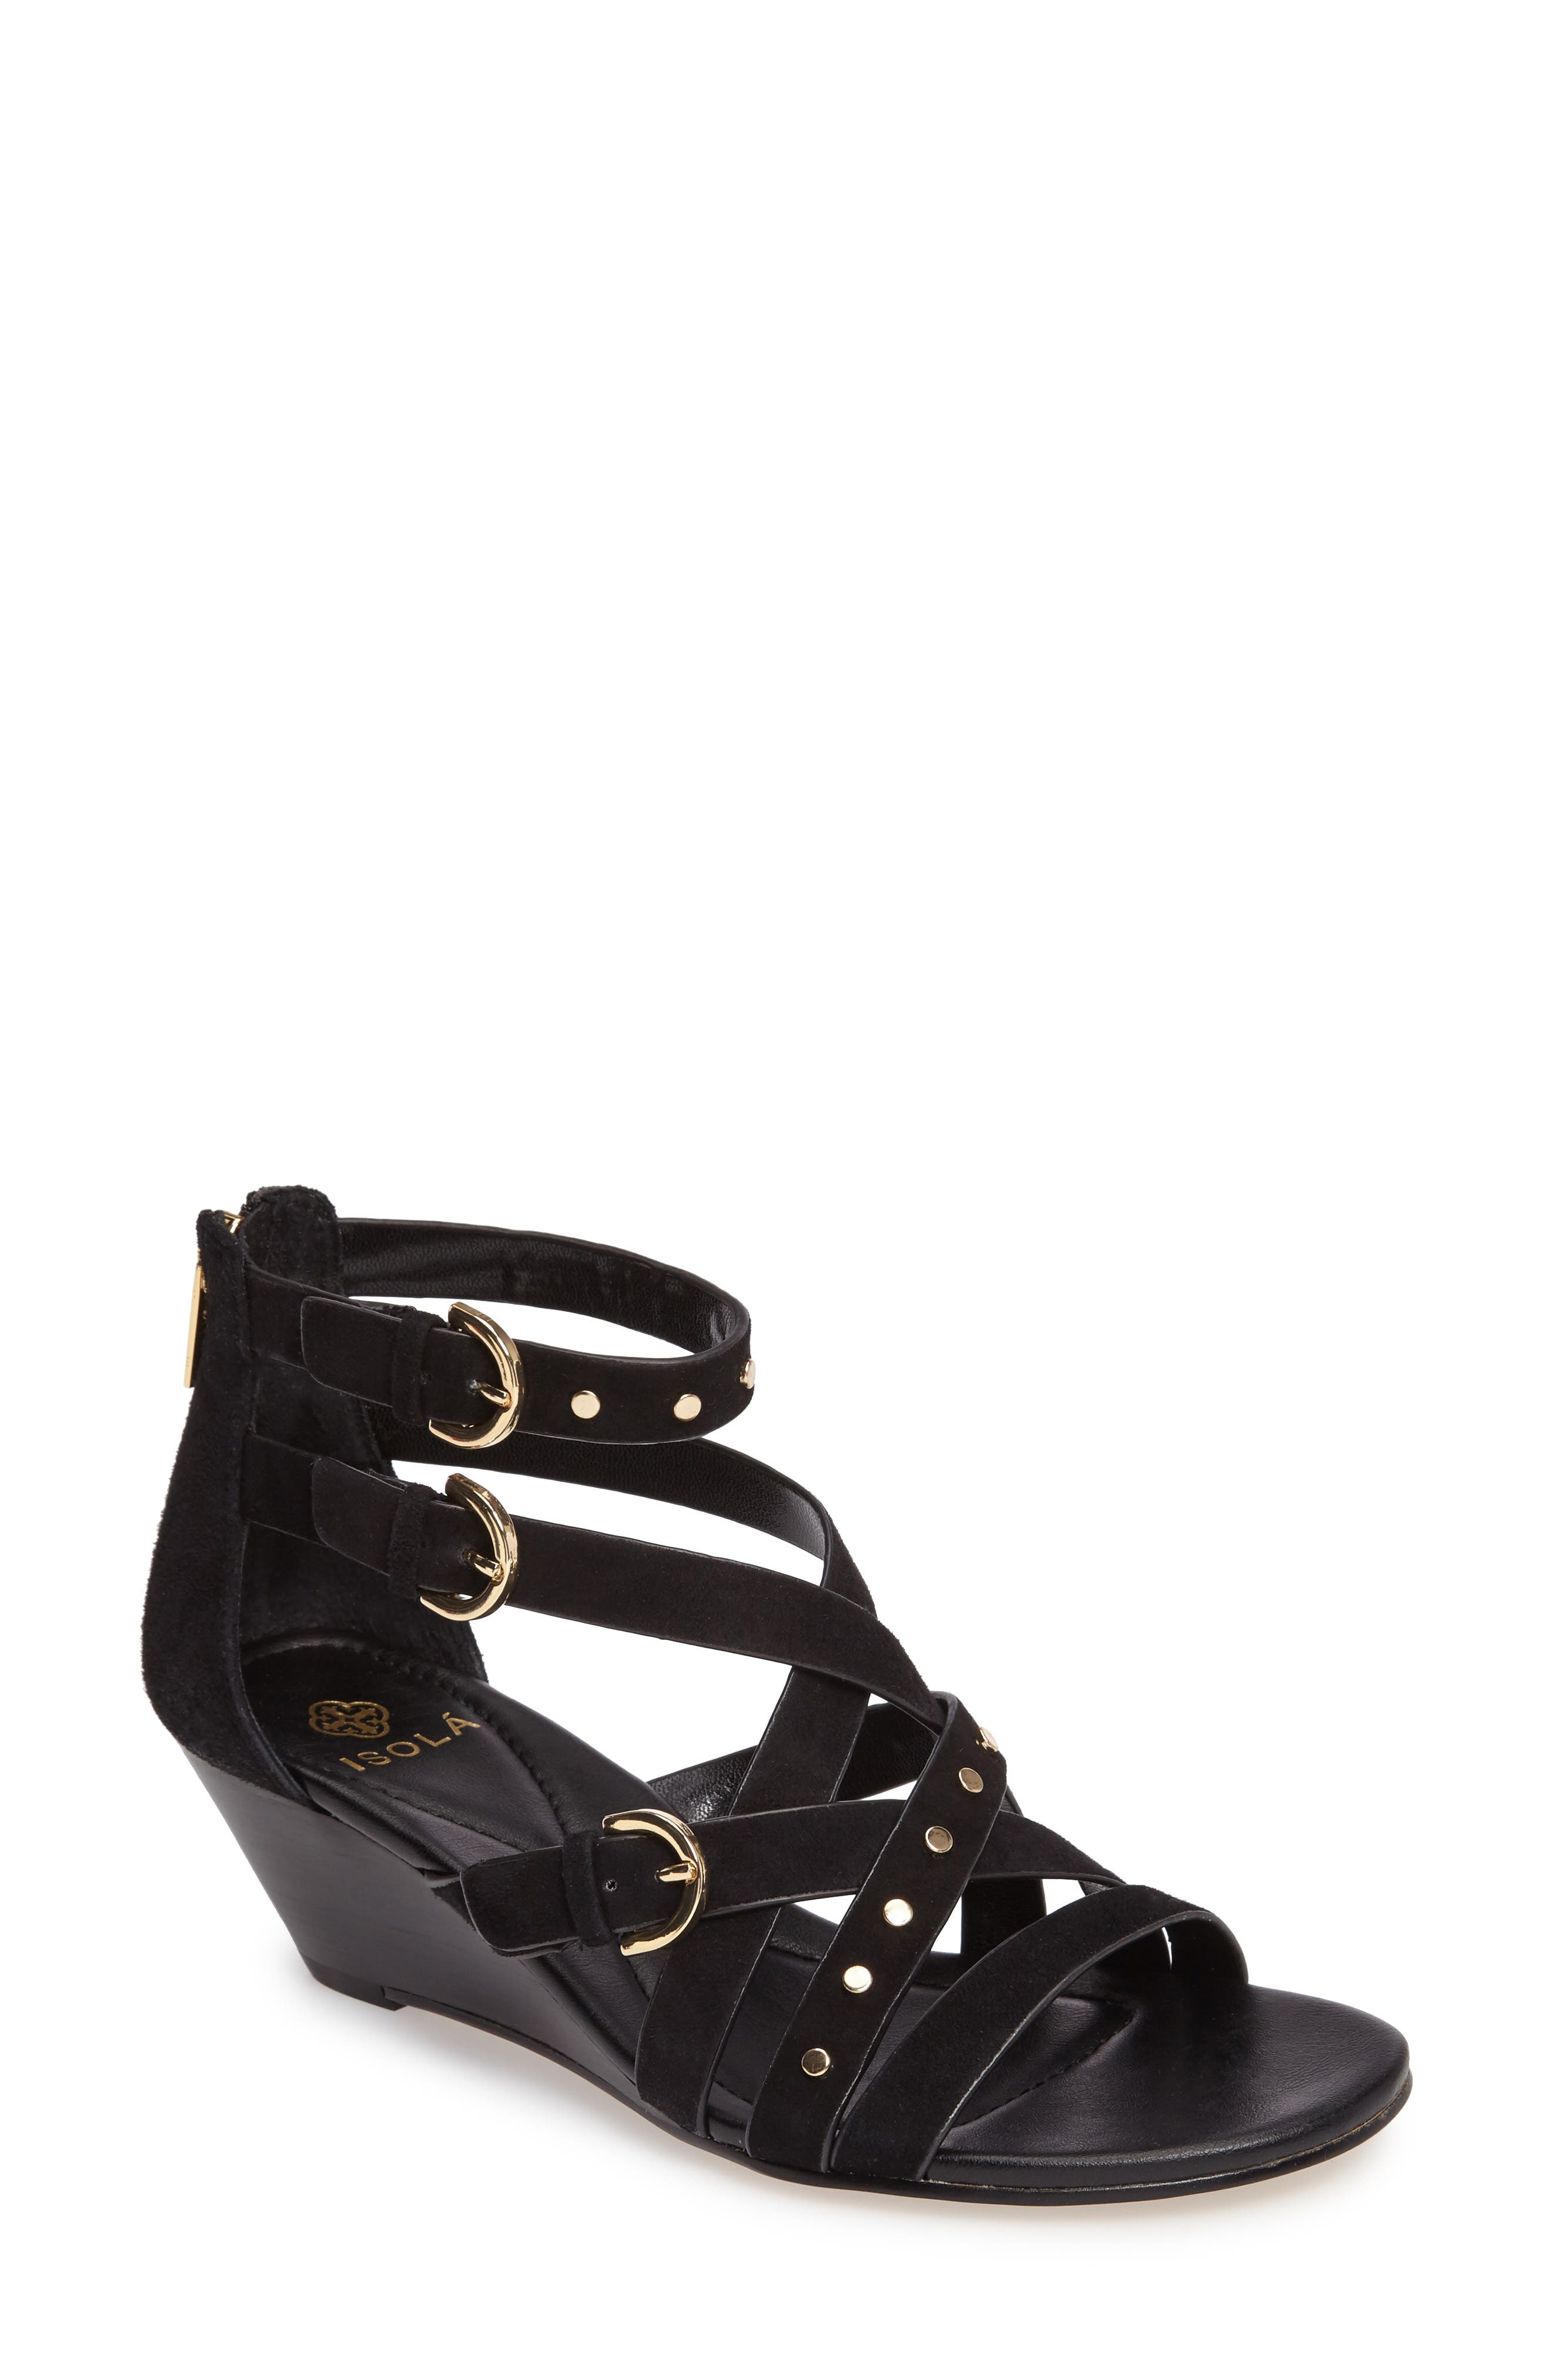 ISOLÁ, Petra Strappy Wedge Sandal, Main thumbnail 1, color, BLACK LEATHER